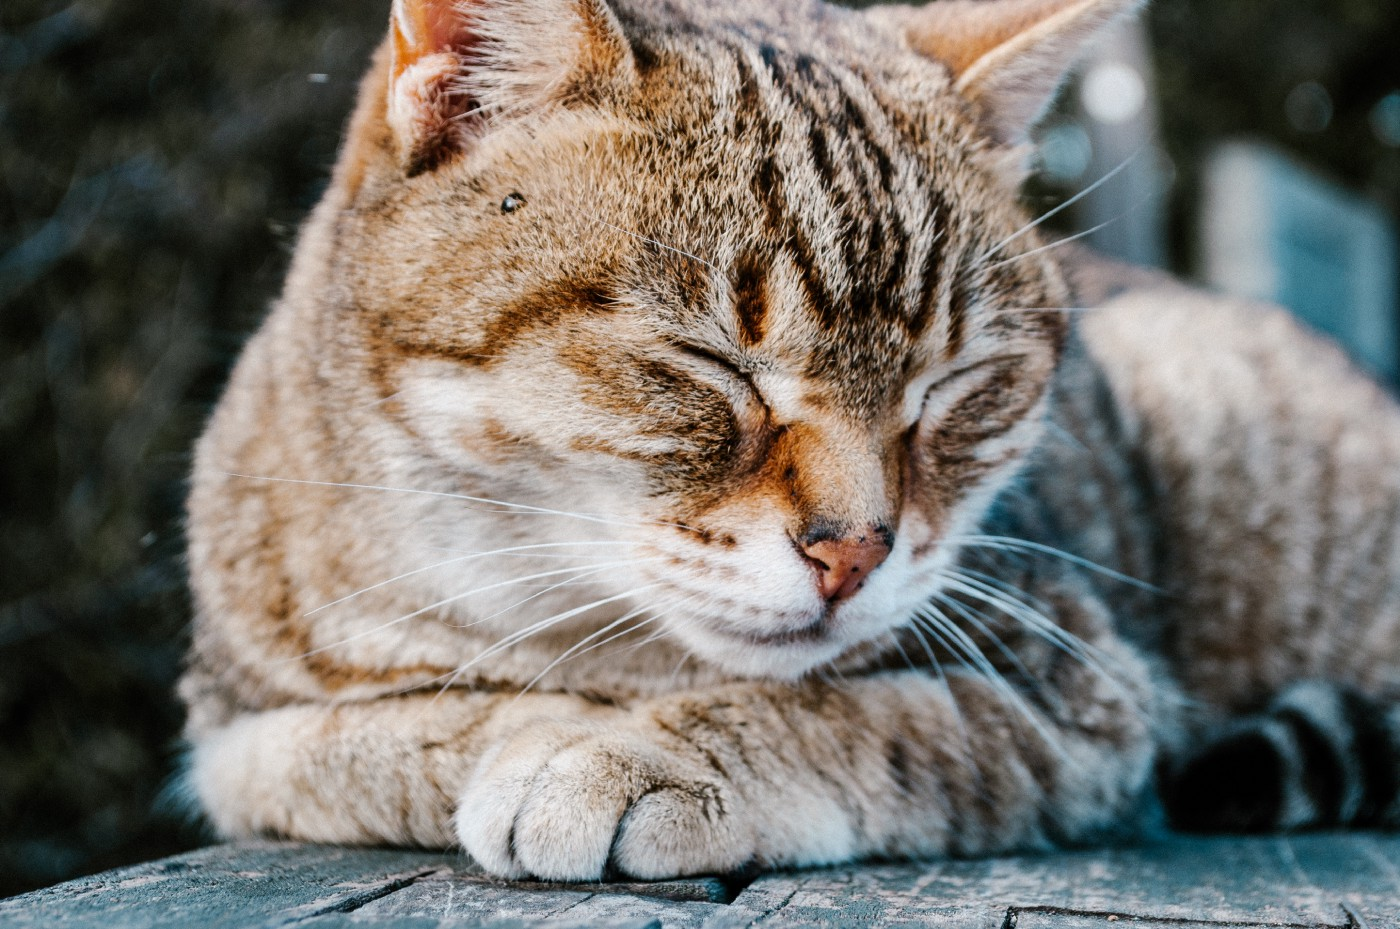 A relaxed cat with its eyes closed